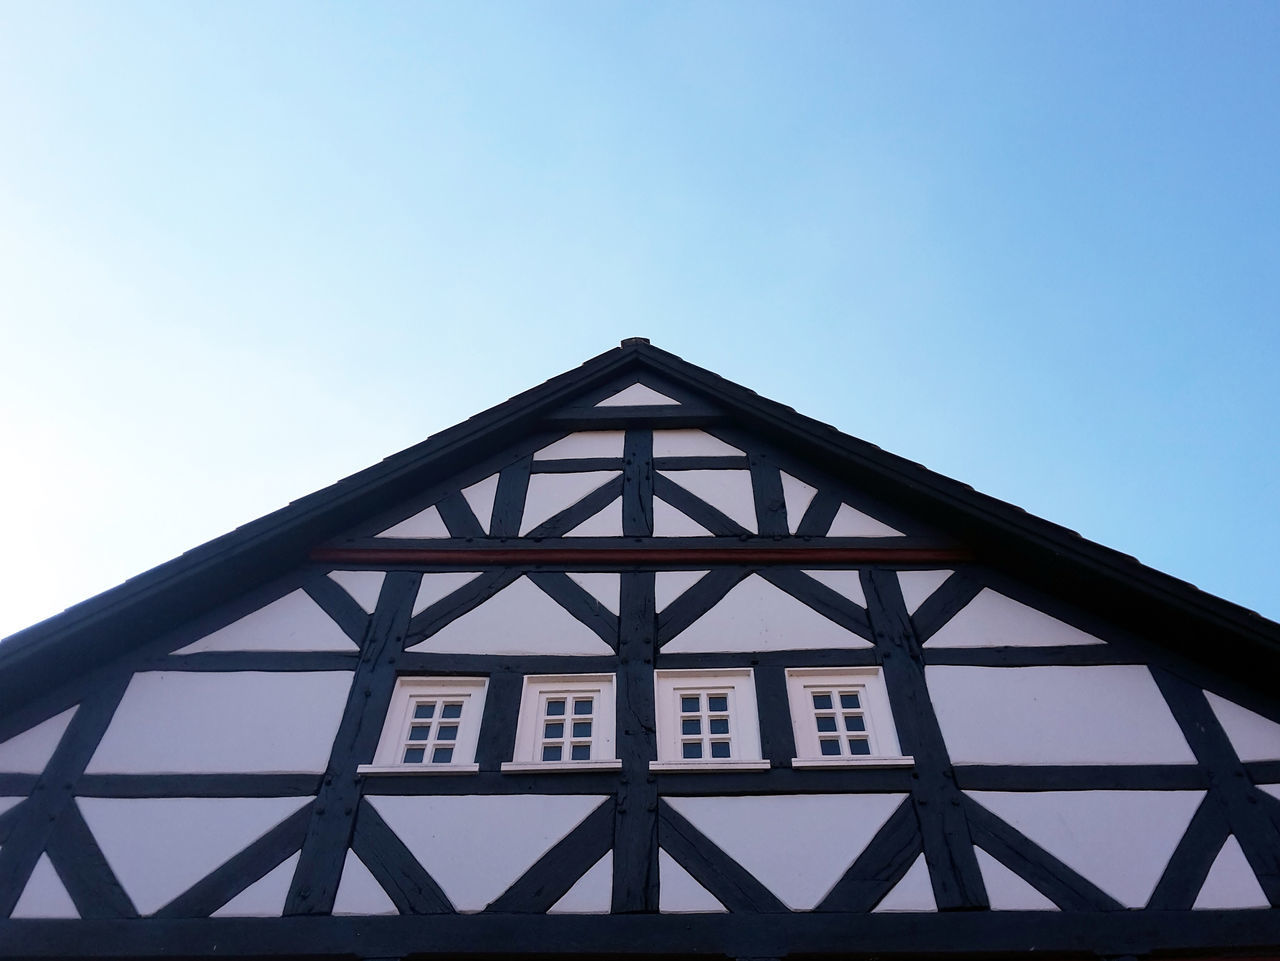 Front of old half-timbered house in late afternoon sun Architectural Feature Architecture Blue Blue Sky Building Exterior Built Structure Clear Sky Copy Space Day Façade Geometric Shape Half-timbered House High Section In Front Of Low Angle View No People Old House Outdoors Window